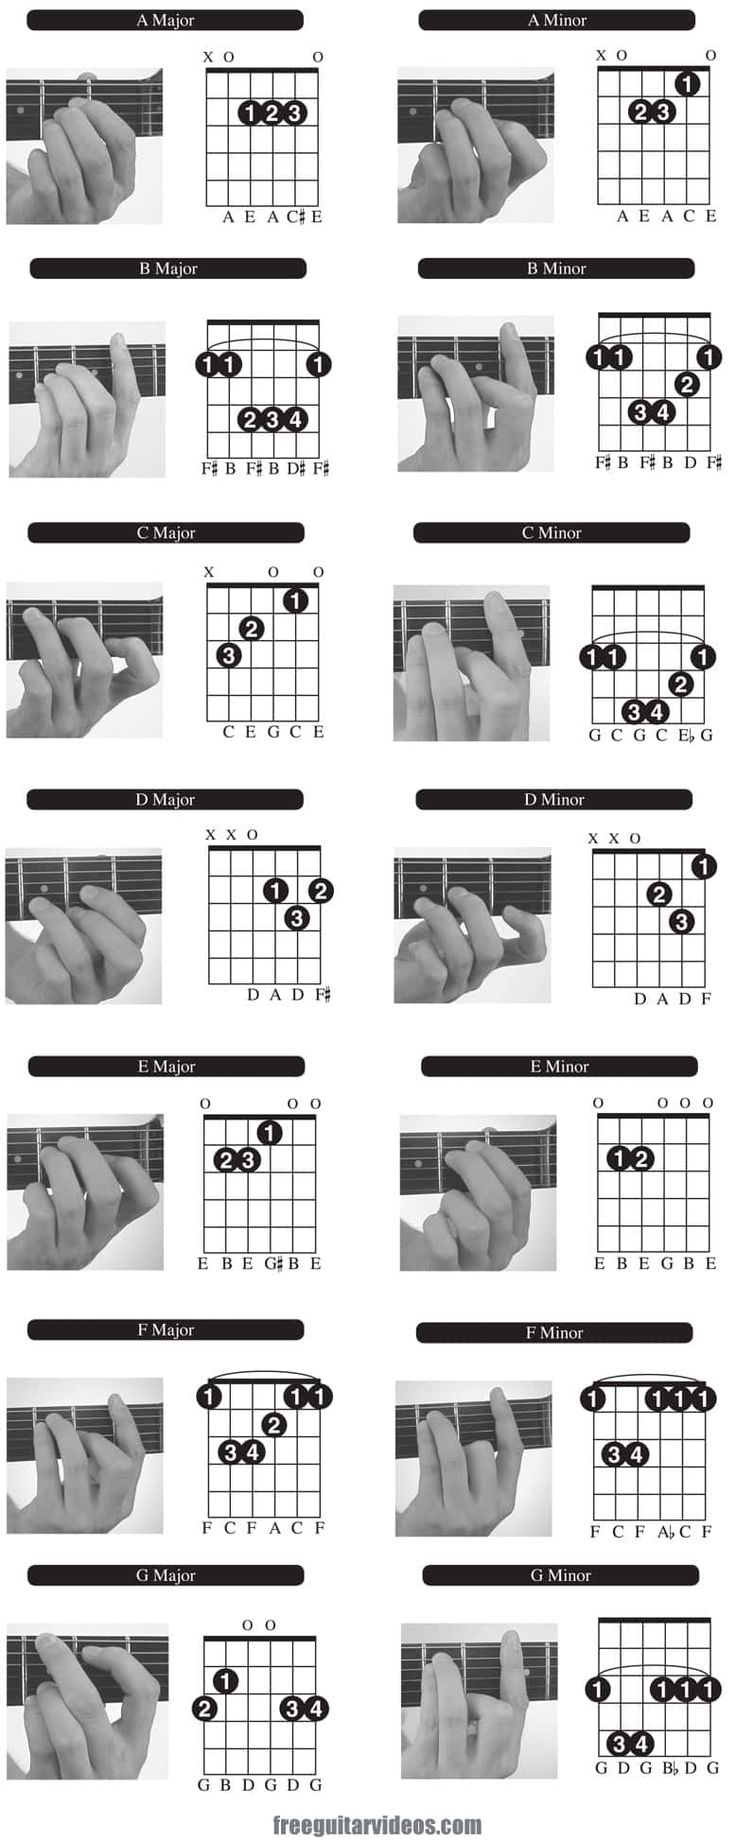 Best 25 a minor ideas on pinterest a minor guitar chord music guitar chords is a video by peter vogl intended for beginner guitarists youfree hexwebz Images